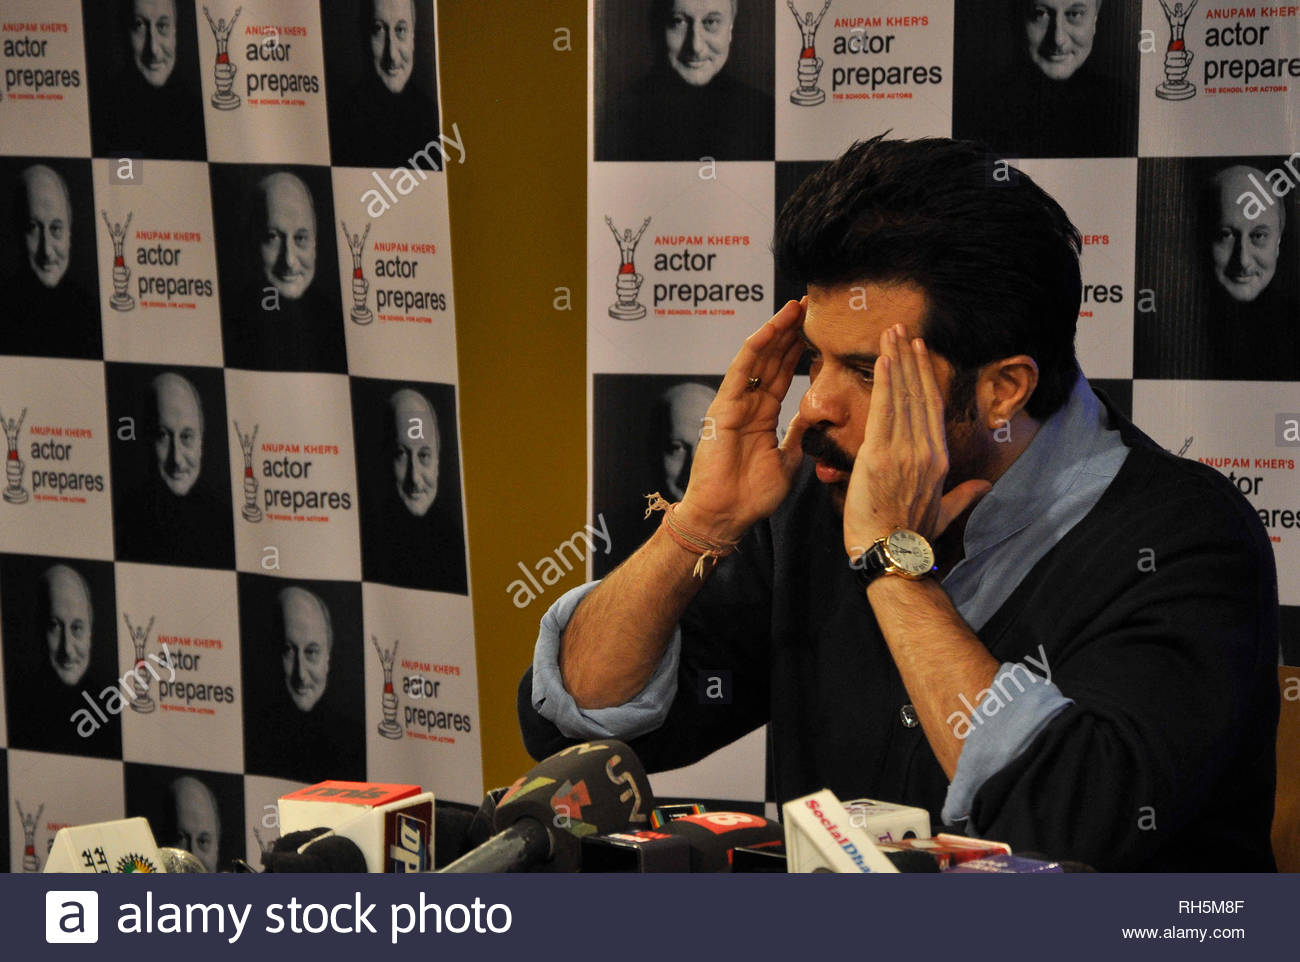 Bollywood actor Anil Kapoor during a Master Class lecture with students of Anupam Kher's Actors Prepares Acting School in Mumbai, India on July 18, 2013. (Deven Lad) - Stock Image